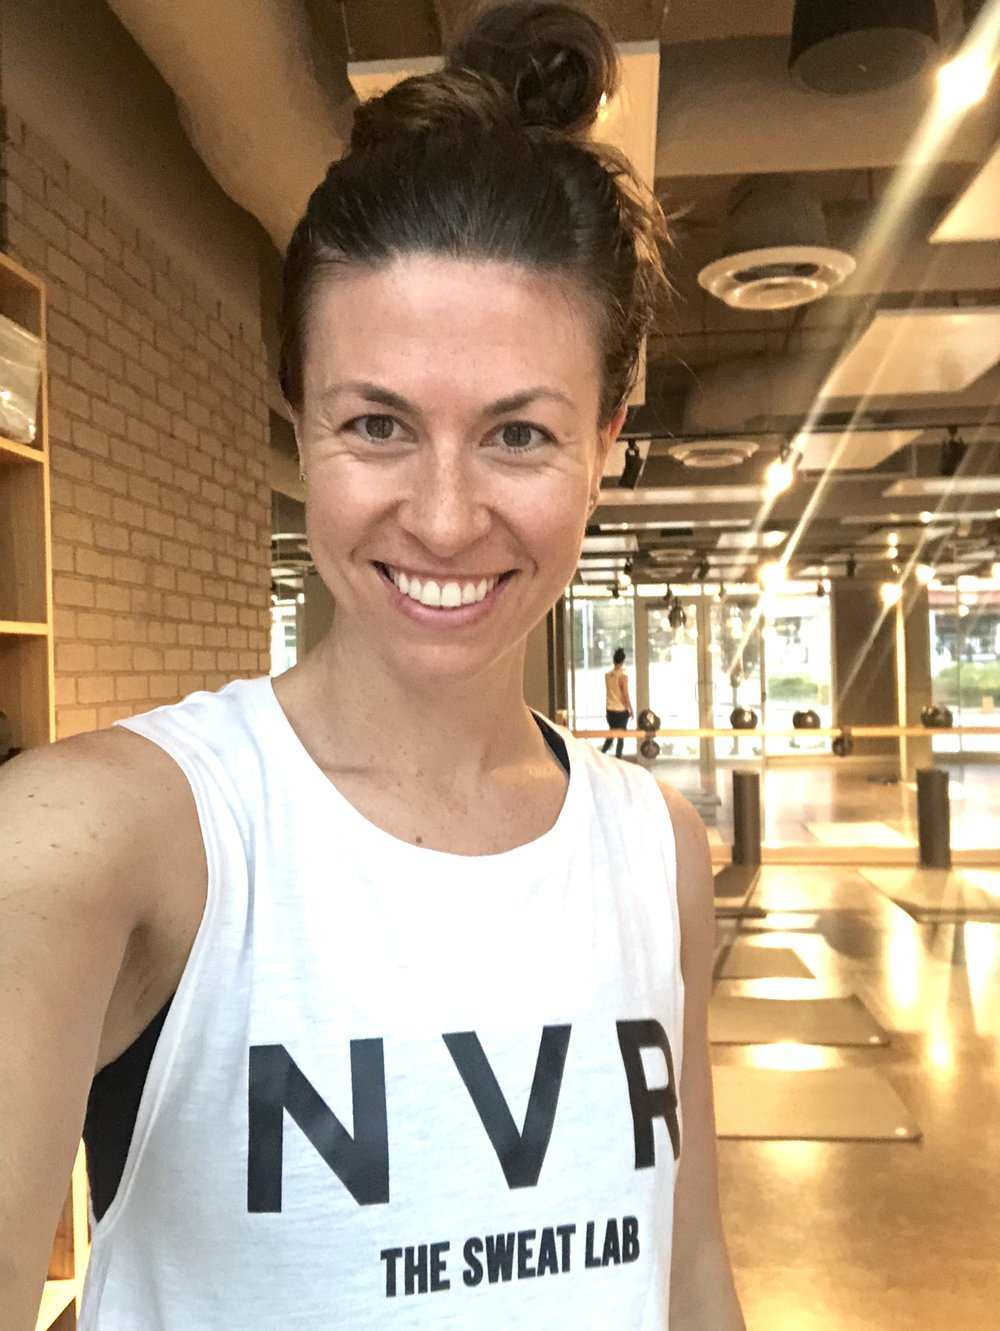 moving my body and sweating at The Sweat Lab, on classpass too!